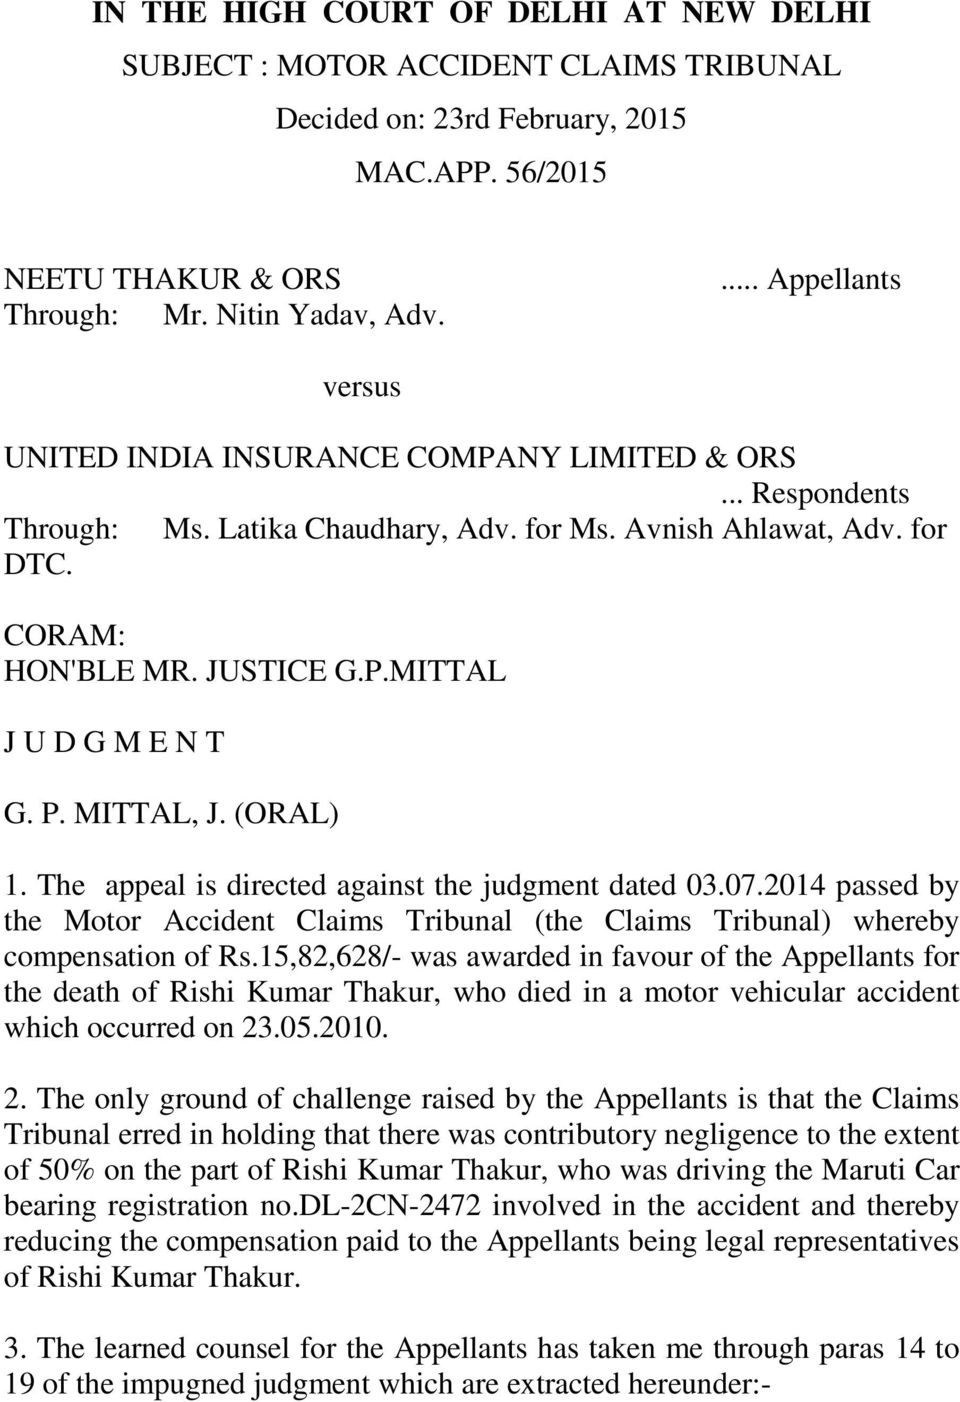 P. MITTAL, J. (ORAL) 1. The appeal is directed against the judgment dated 03.07.2014 passed by the Motor Accident Claims Tribunal (the Claims Tribunal) whereby compensation of Rs.